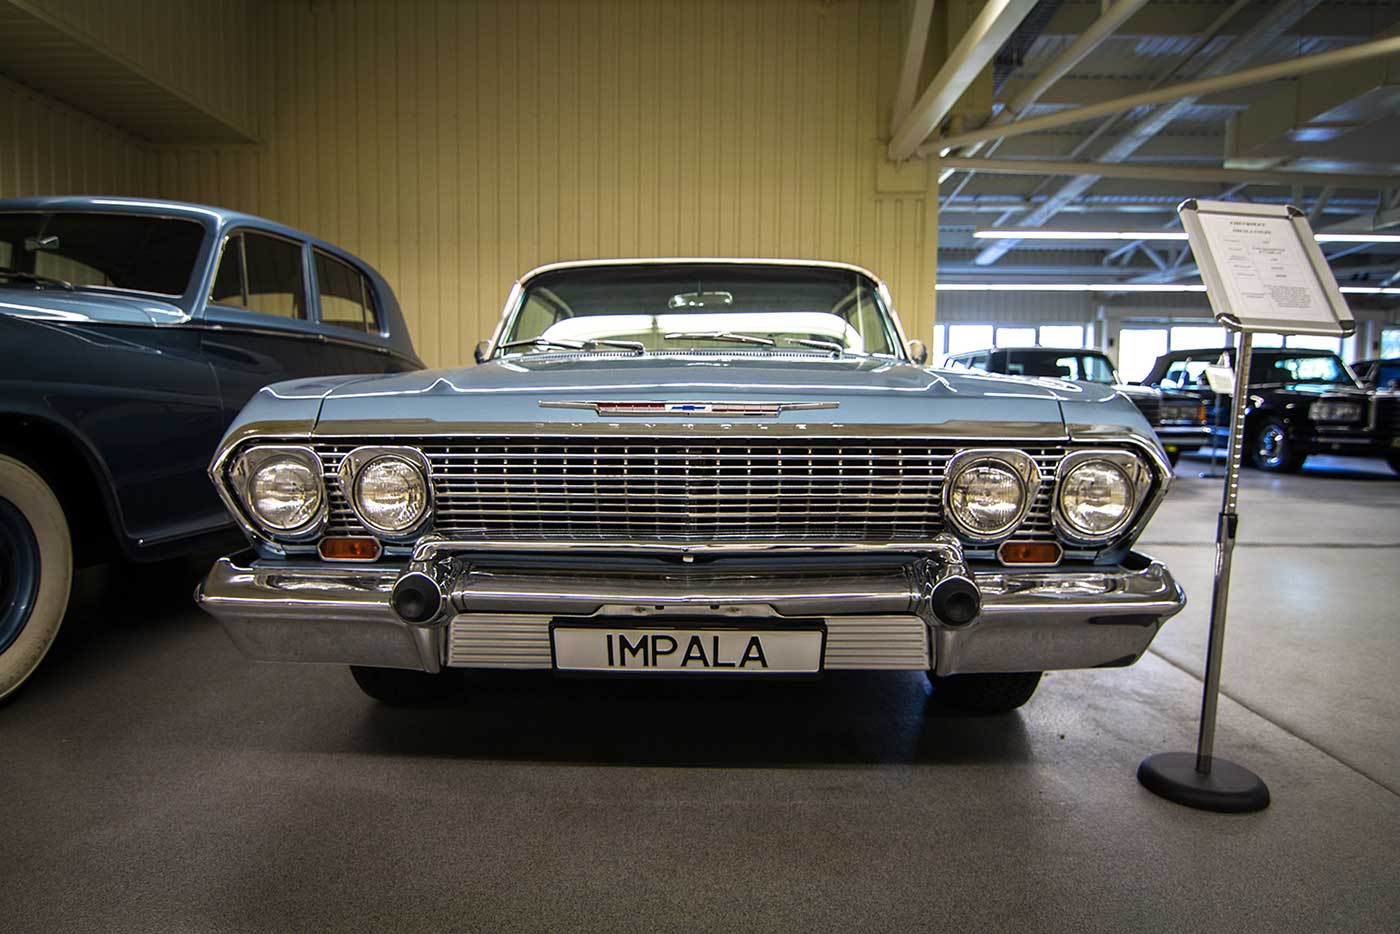 A Chevrolet Impala from Yanukovych's collection. Mezhyhirya, Ukraine.